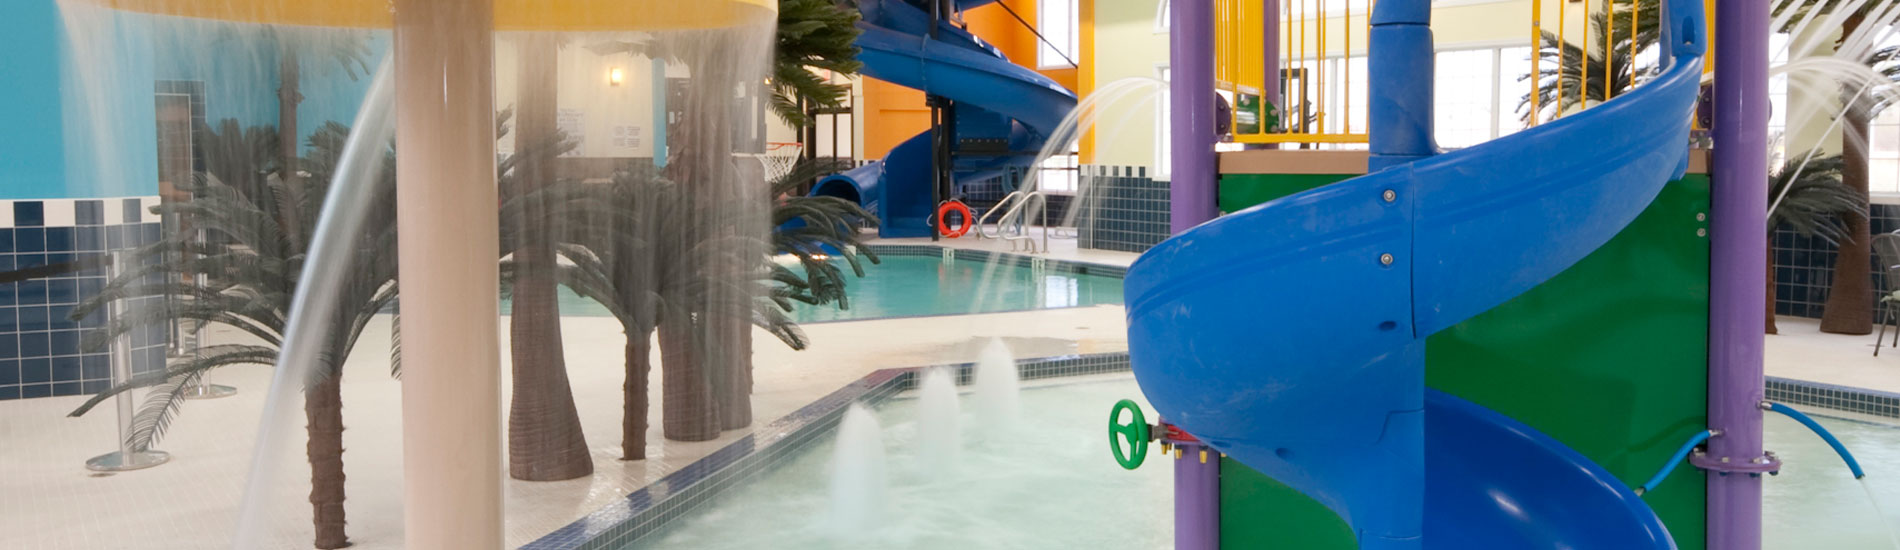 High Level S Gest Indoor Water Park And Pool The Best Western